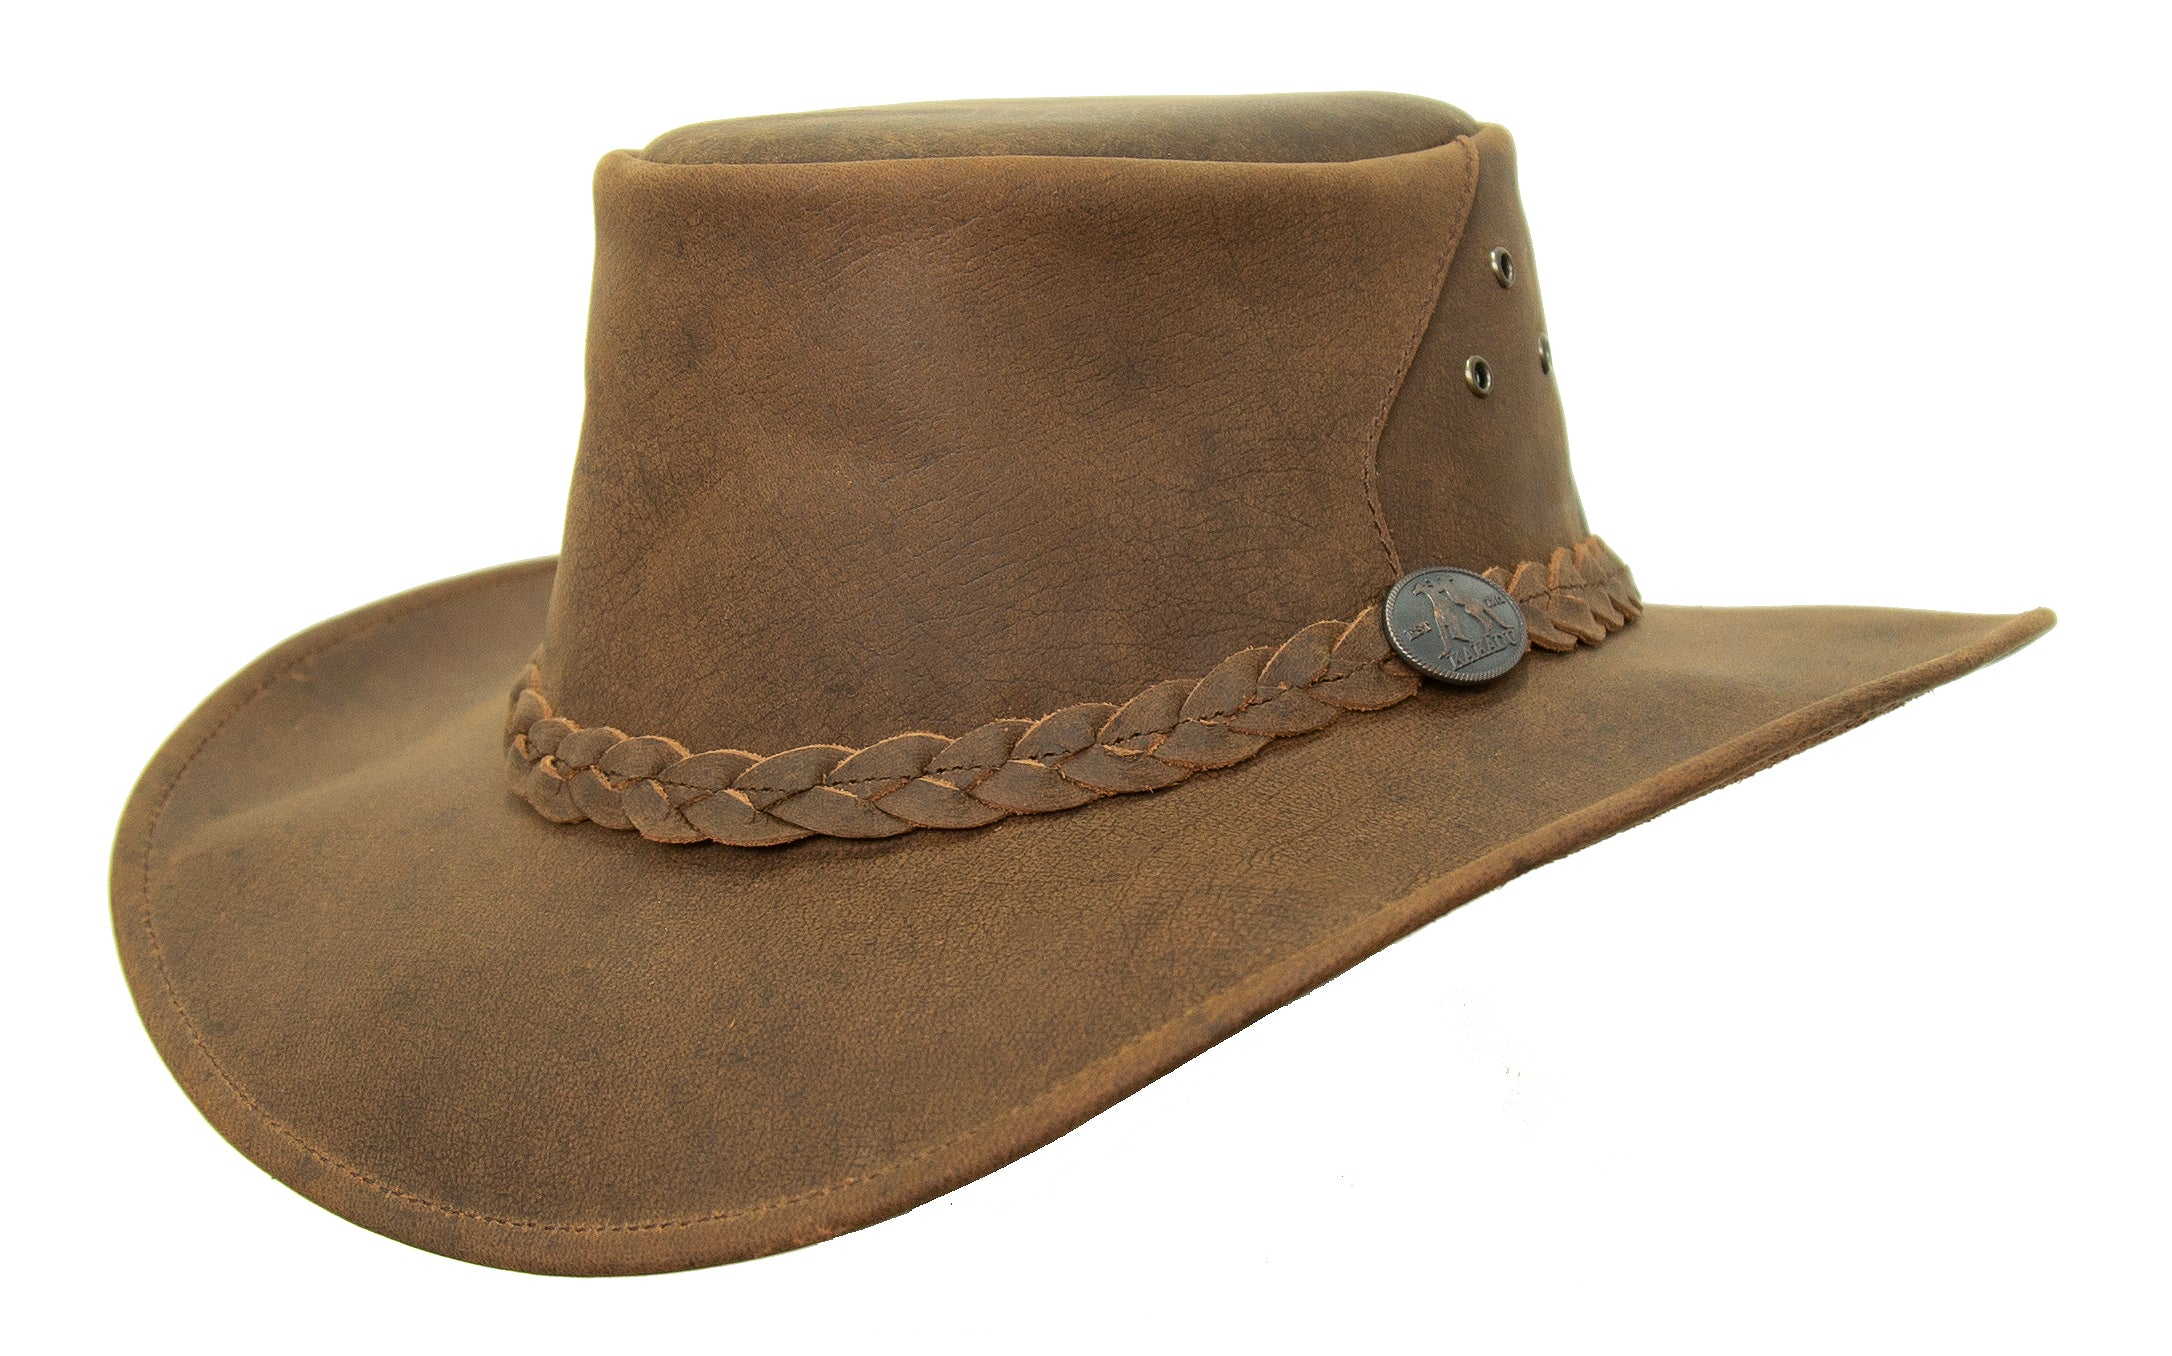 Outdoor | Leather hat Bulldog with pliable brim | Made in Australia